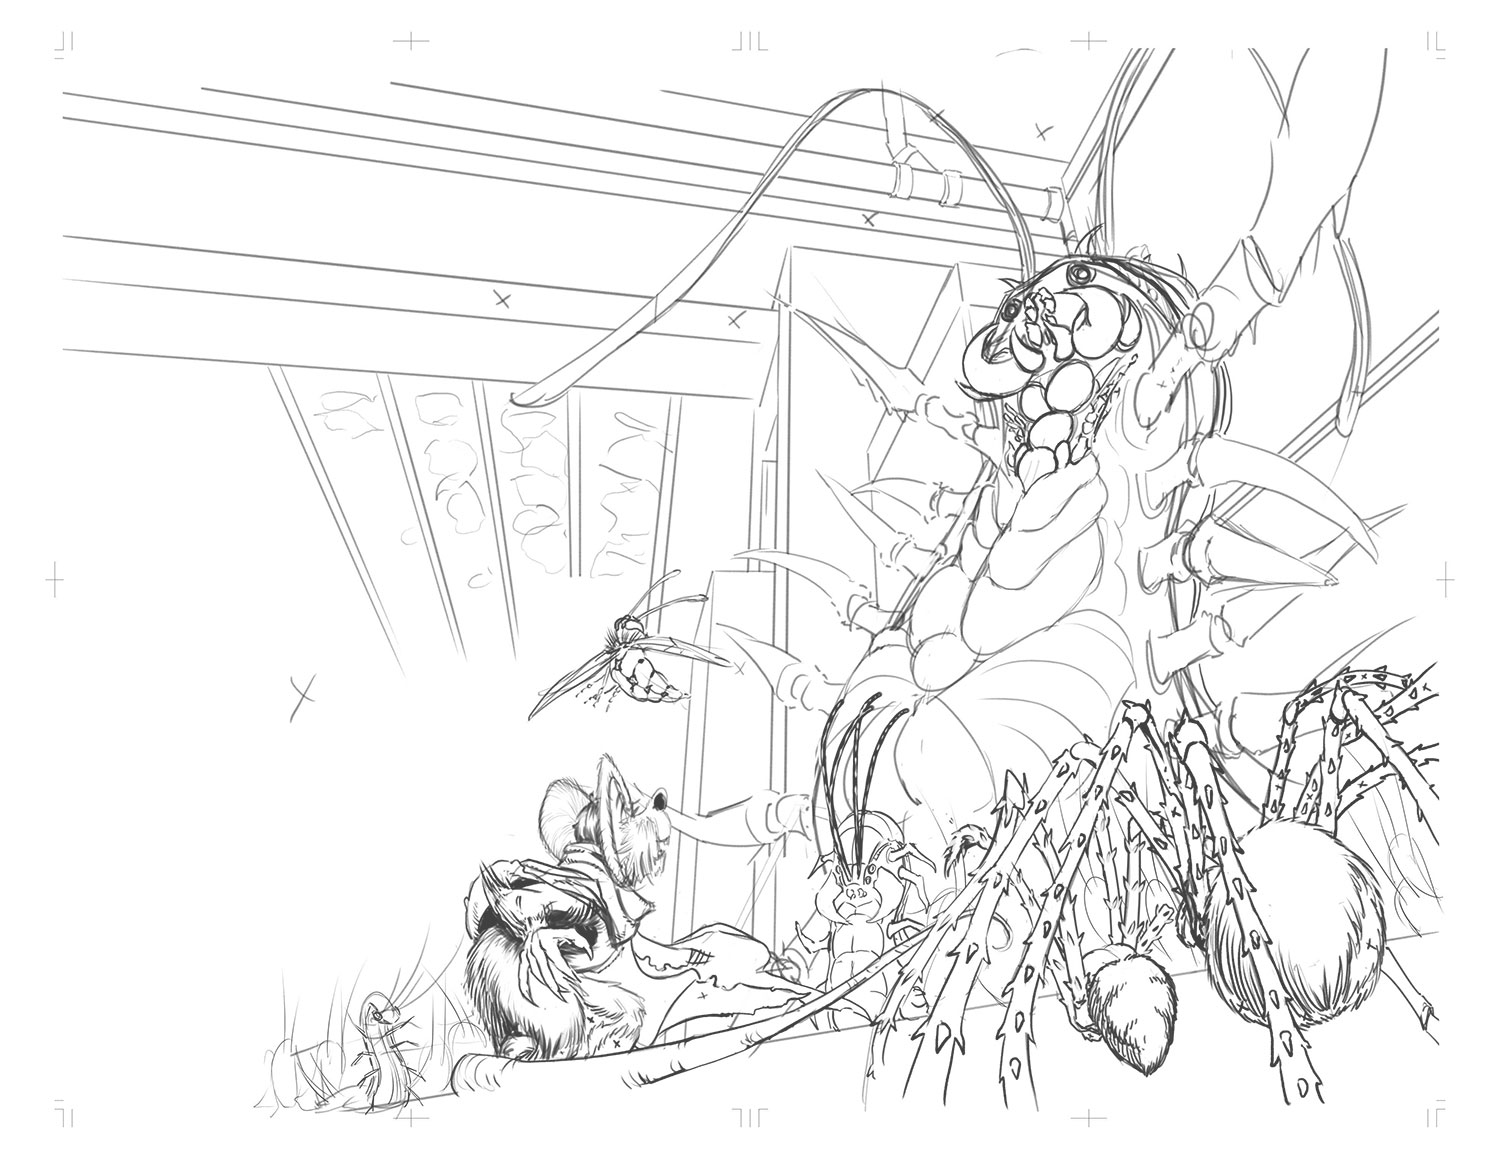 Here's the final spread as digital pencils. Details have been added in for all the hero characters. Some changes were made with the spiders and centipedes. Some background centipedes were also added in to populate the scene. From here it is converted to bluelines and printed to be traditionally inked.